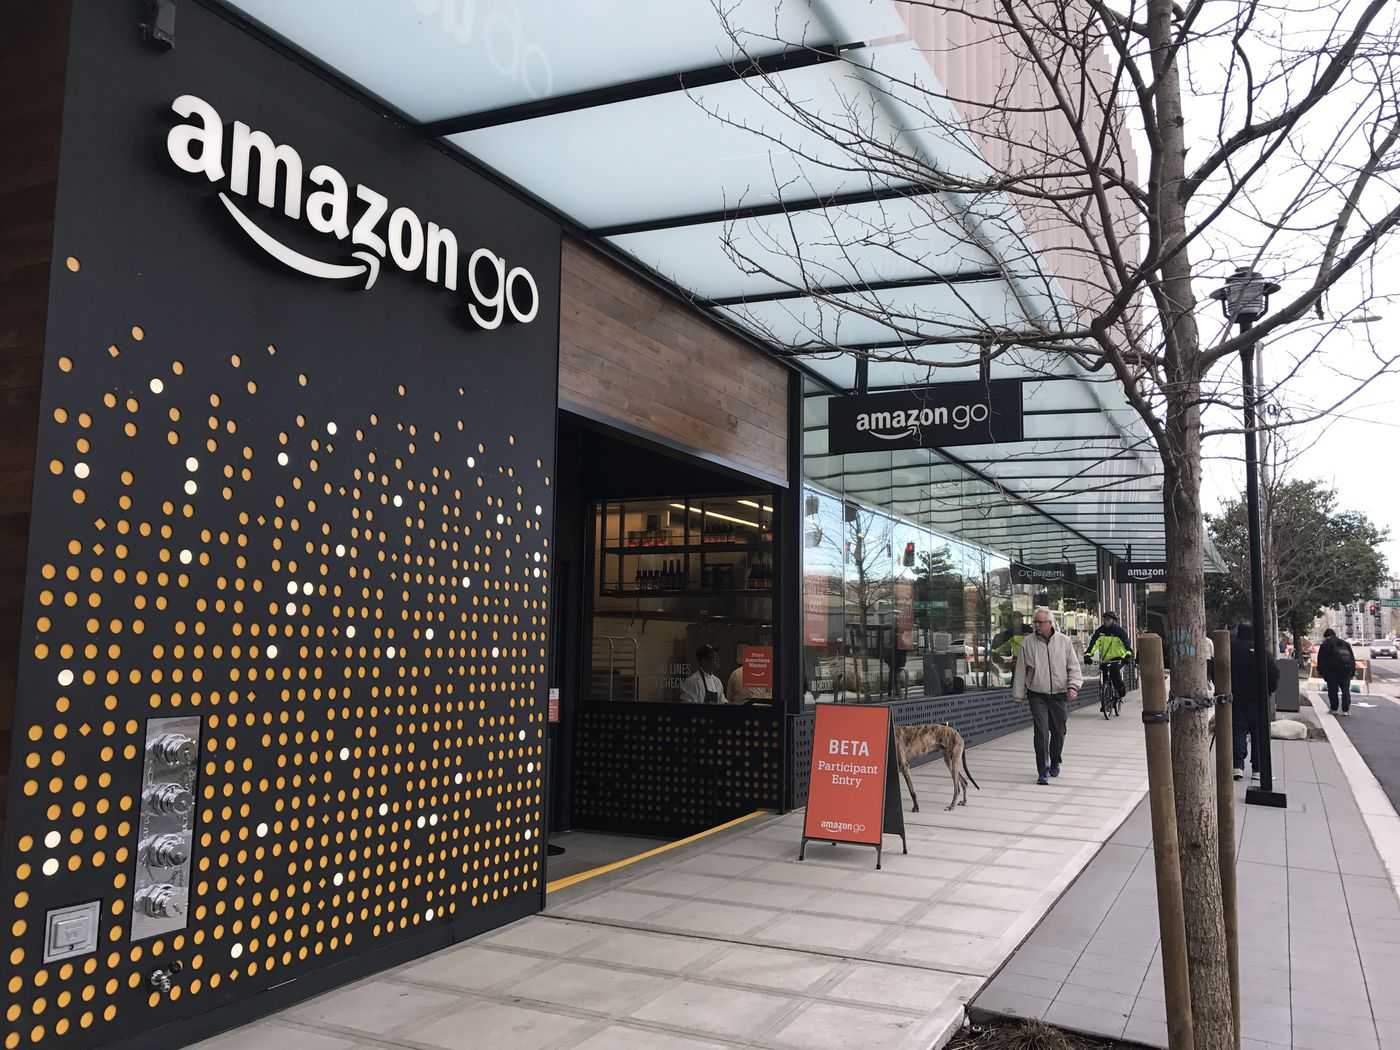 Amazon's cashierless Go stores could be a $4 billion business by 2021, new research suggests - Vox